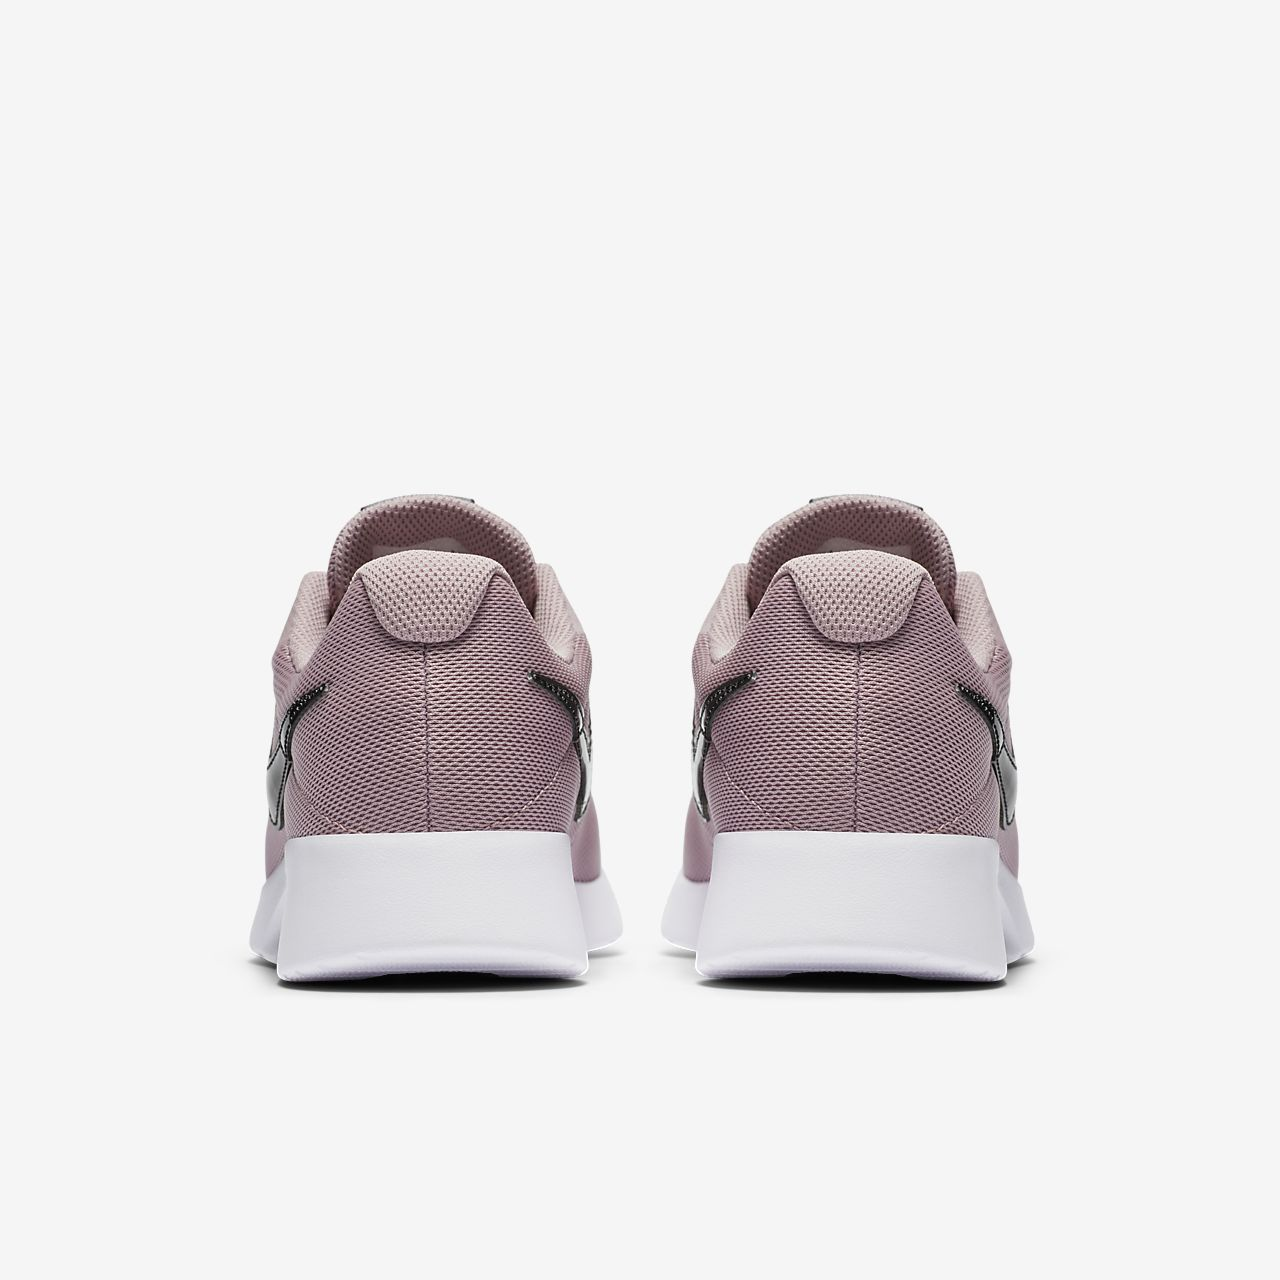 Low Resolution Nike Tanjun Women s Shoe Nike Tanjun Women s Shoe 9afee1186